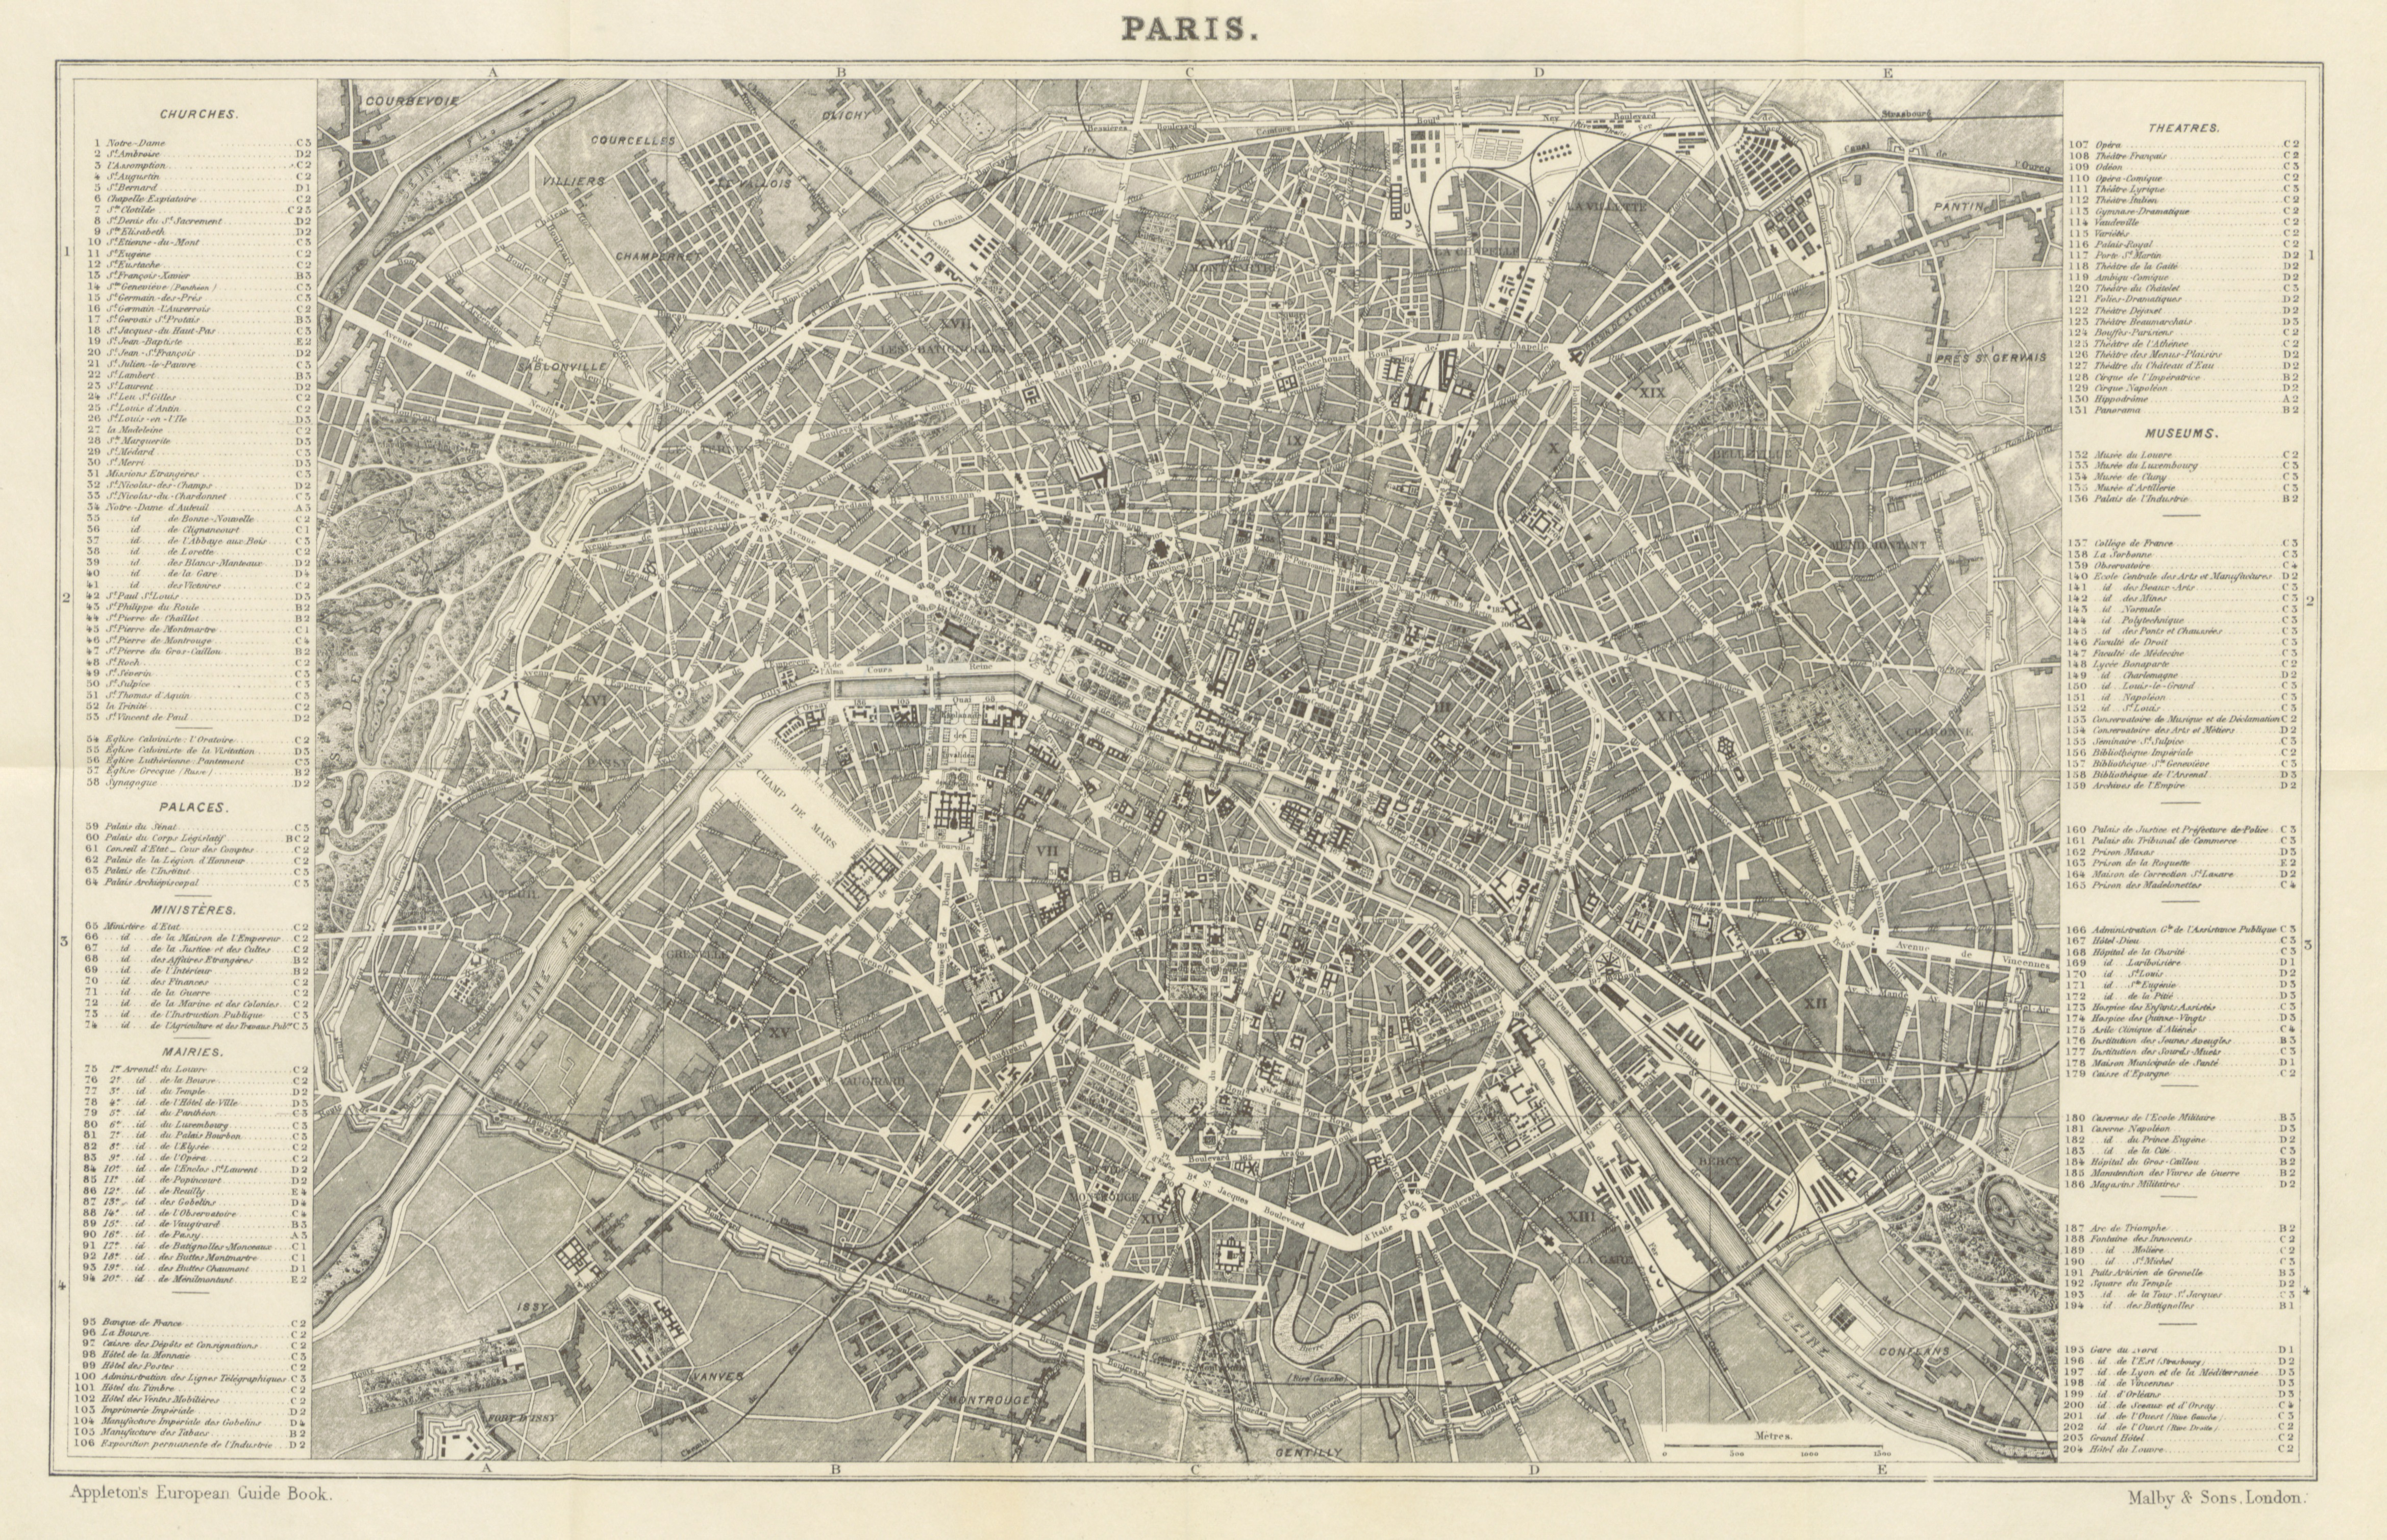 Map of Paris from 'Appleton's European Guide Book Illustrated', 1872. Open Licence (CC-PD)